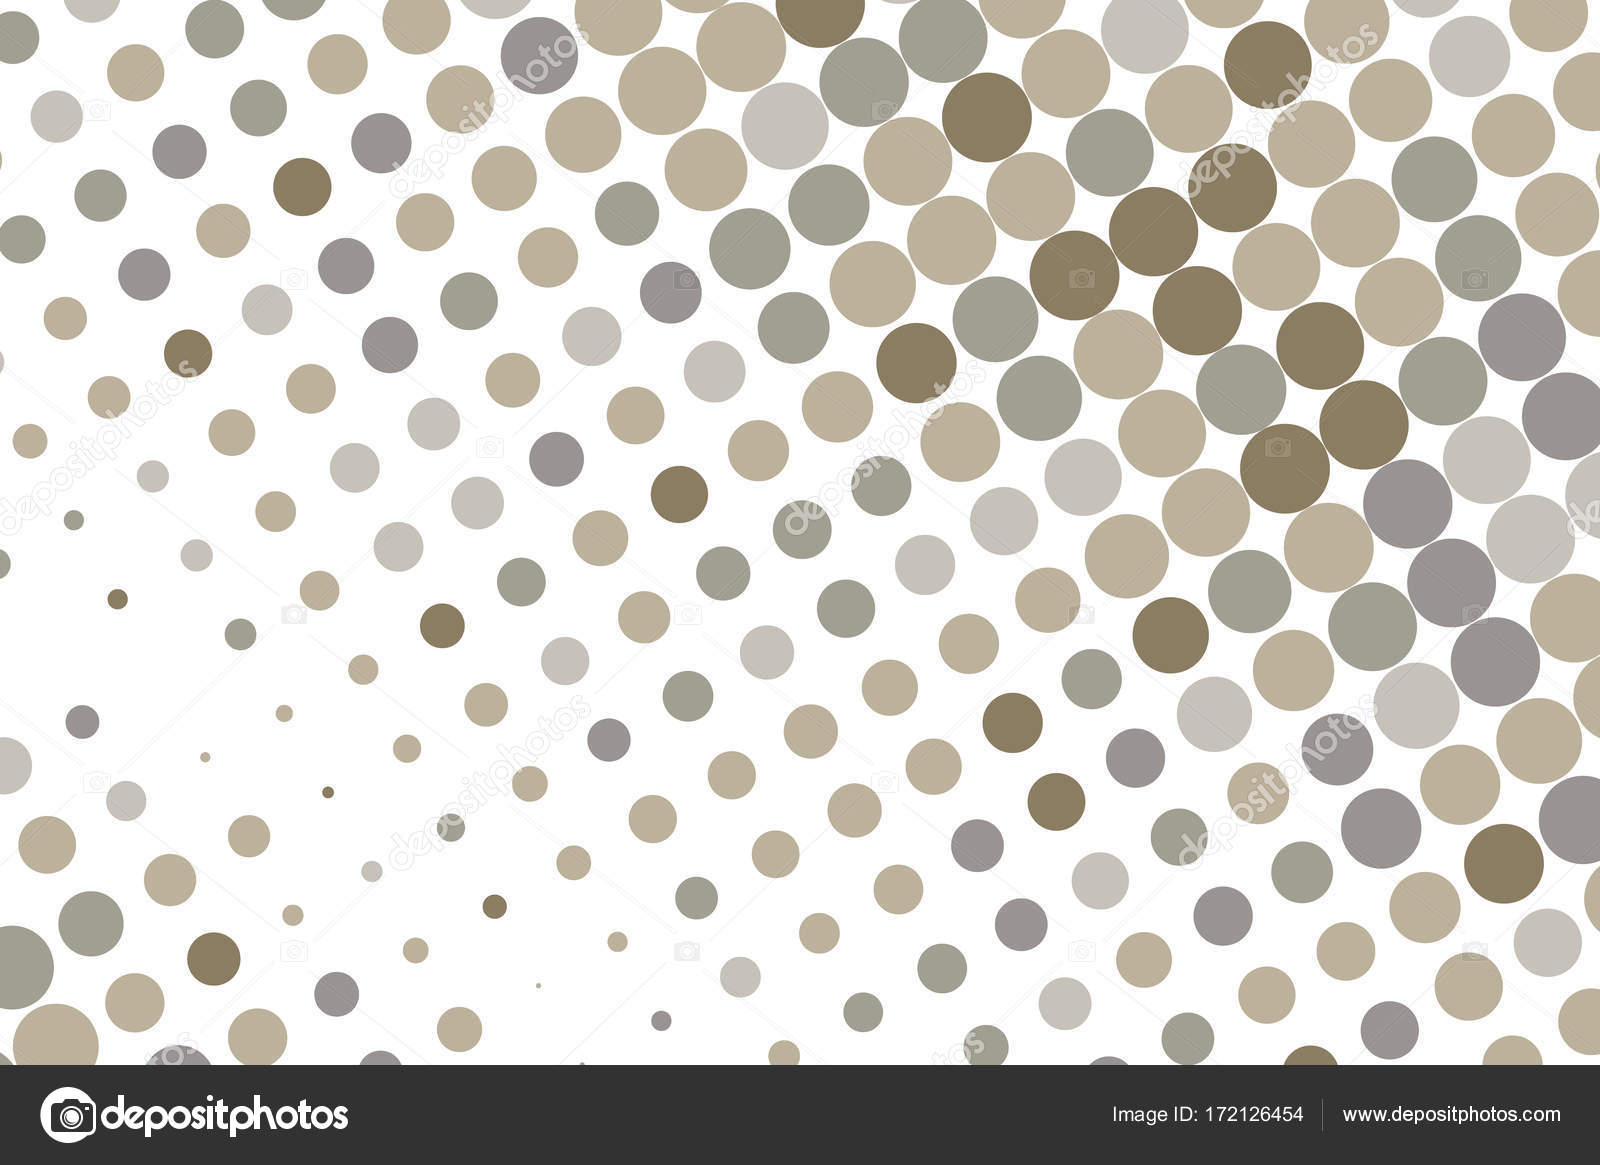 Dotted backdrop with circles, dots, point large scale  Gray